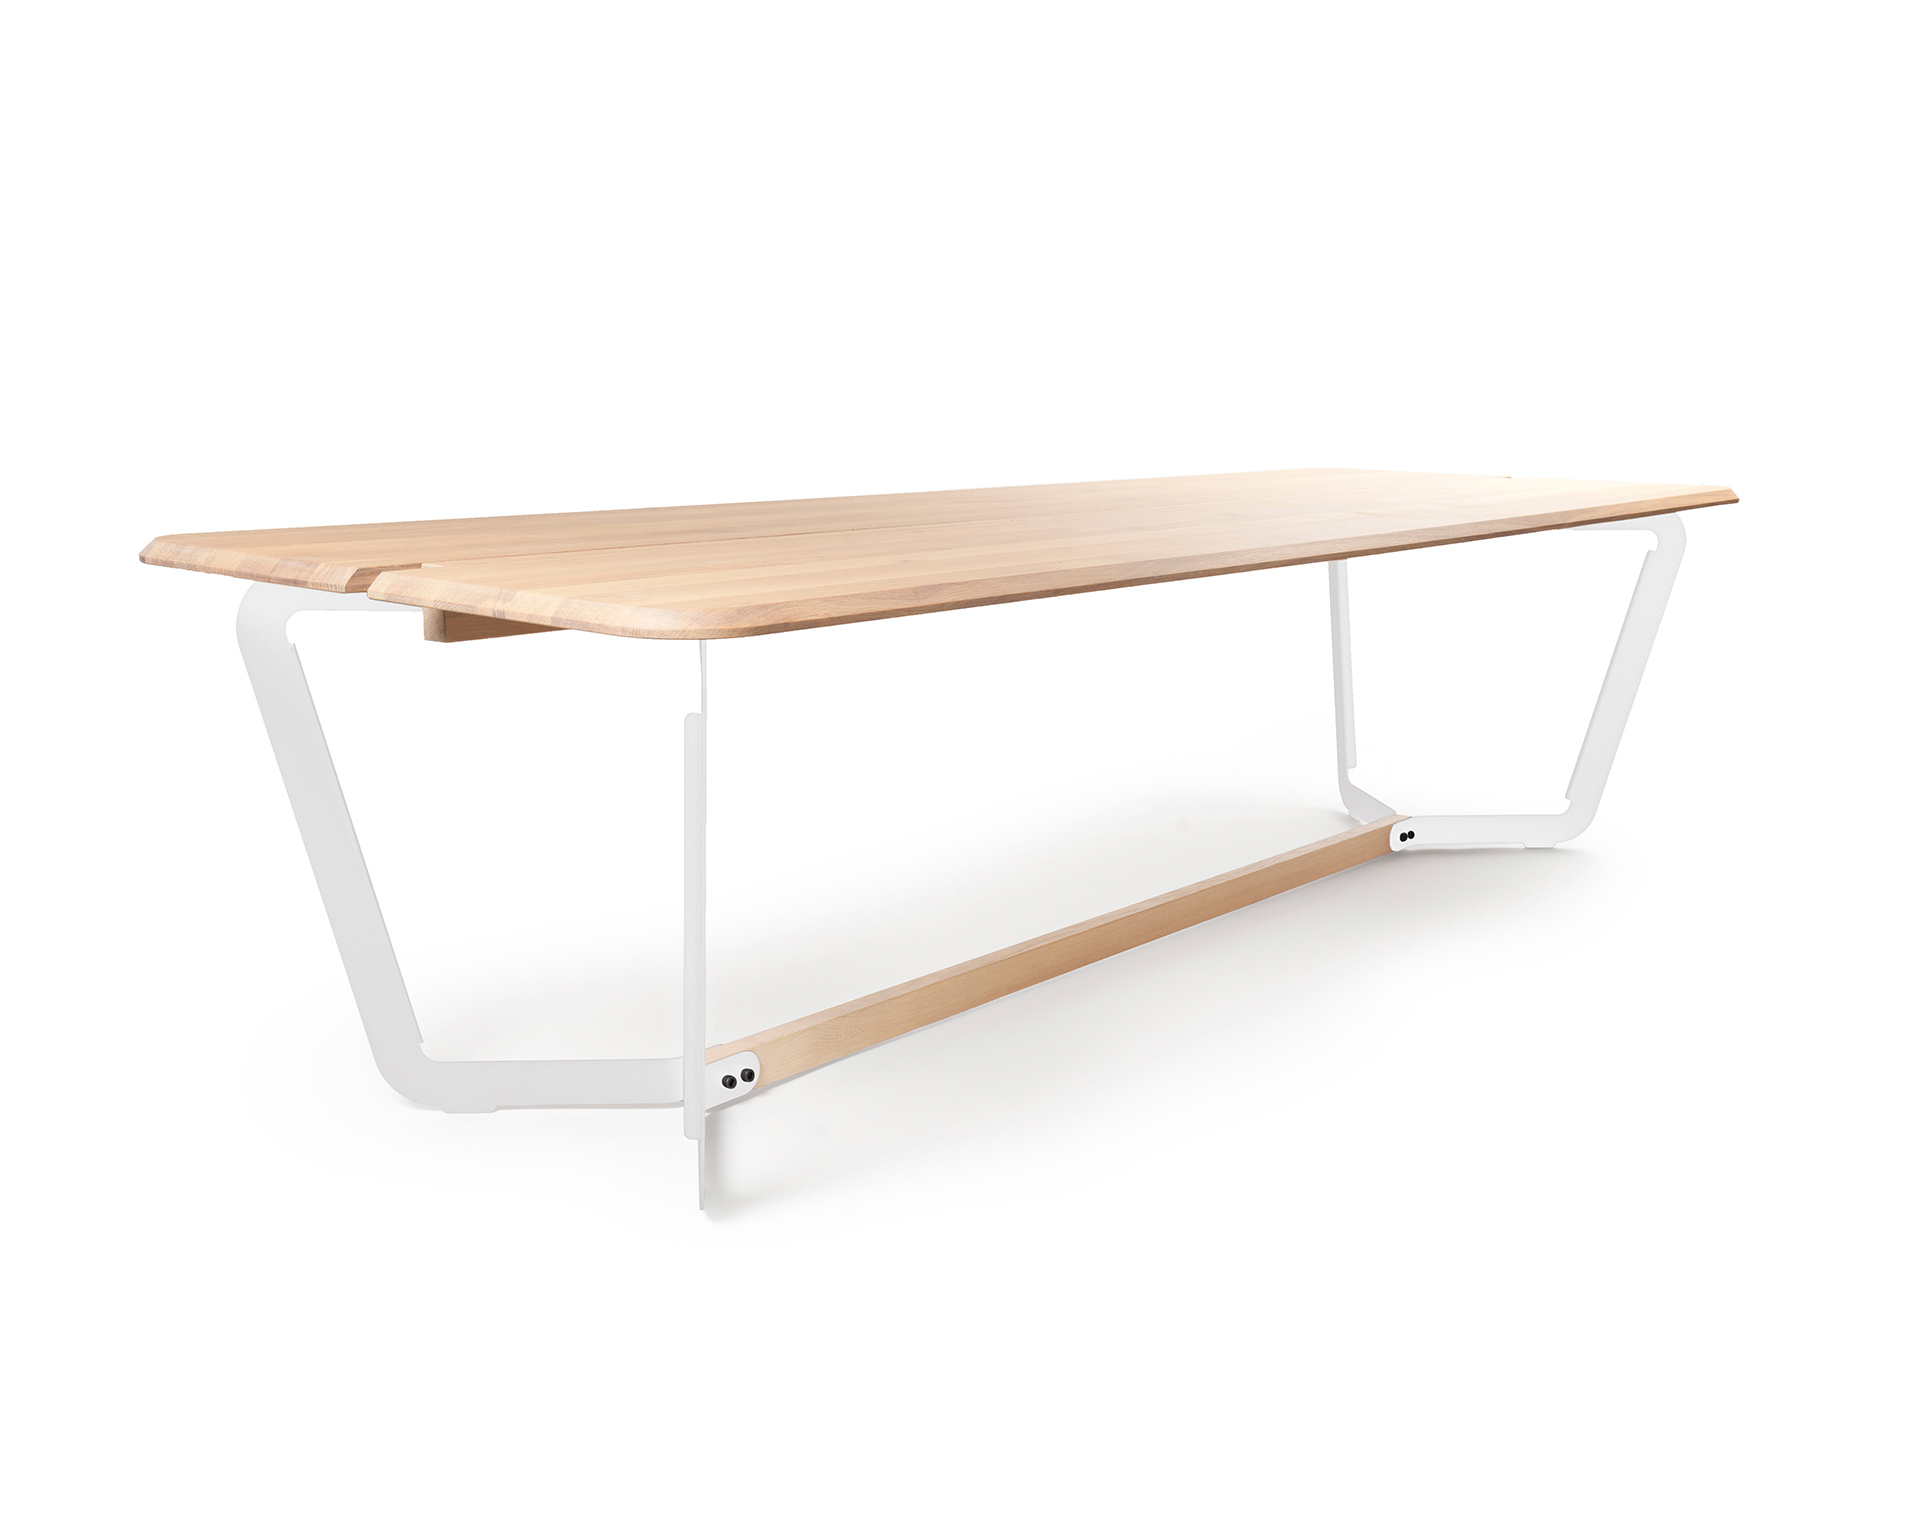 Eettafel Hout Wit Onderstel.Design Eettafel Stringer L Bas Vellekoop L Odesi Your Dutch Design